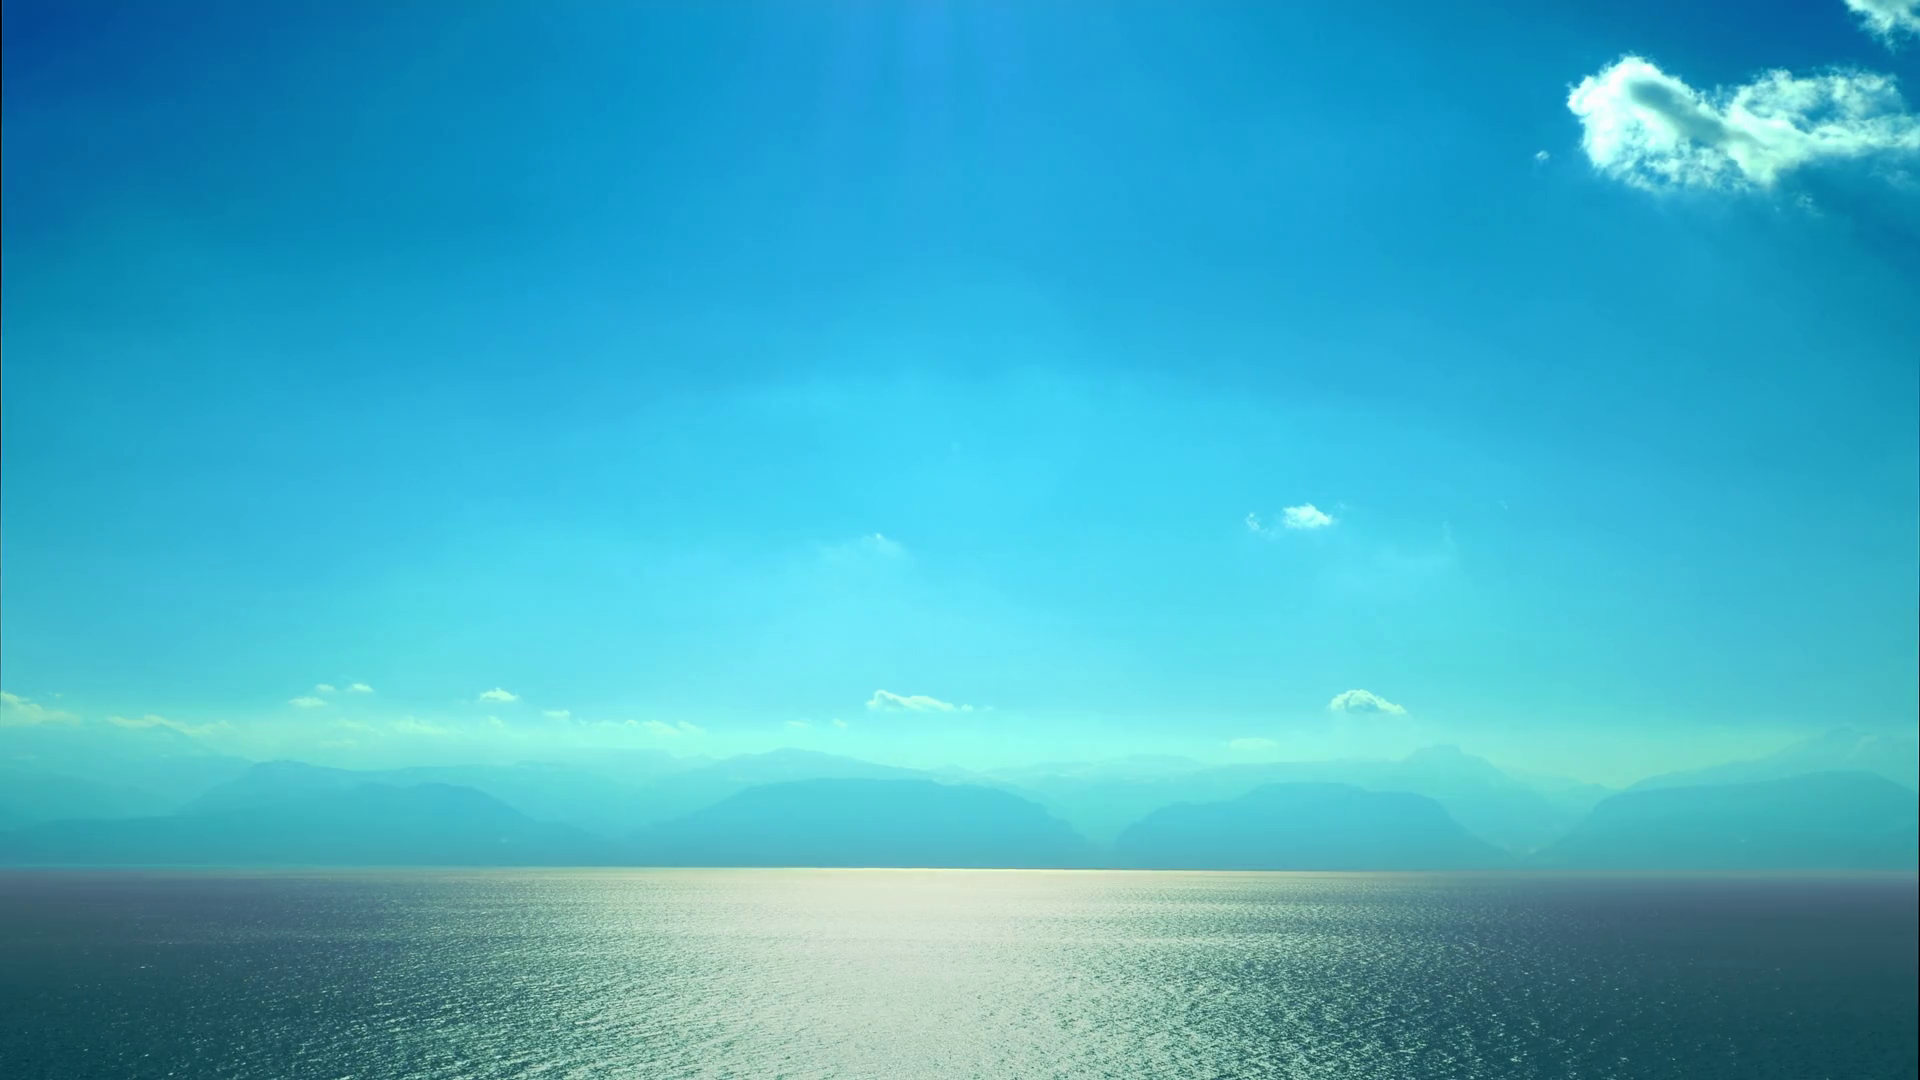 Water And Sky PNG - 169649